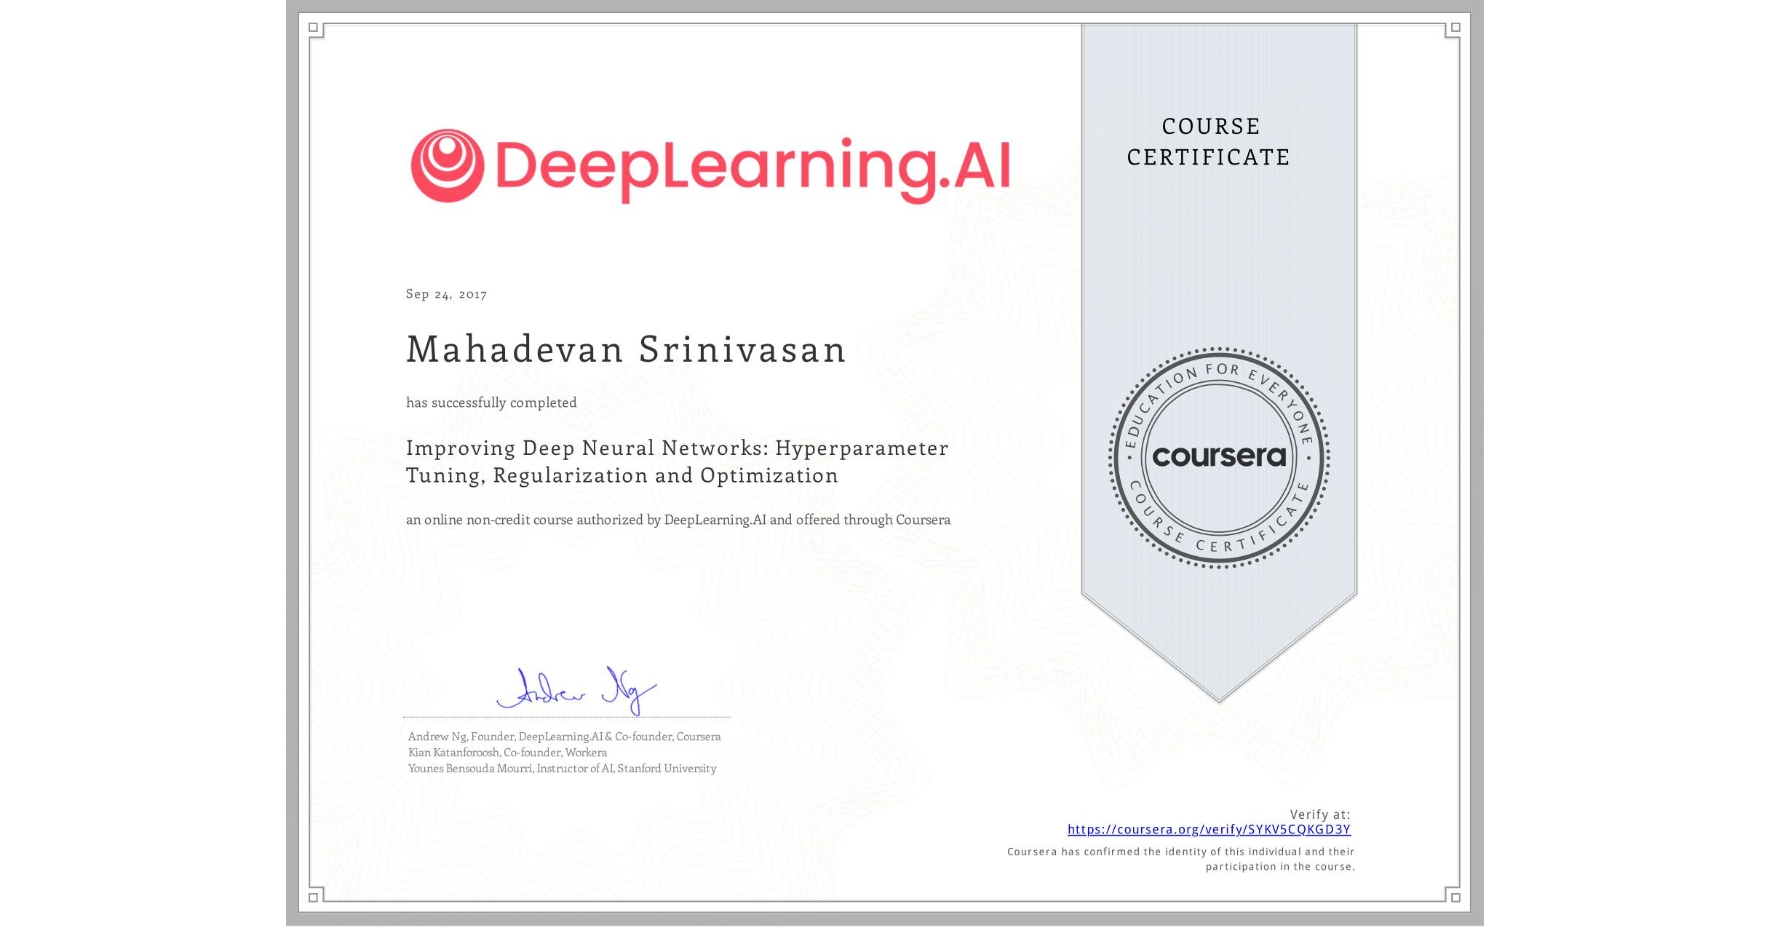 View certificate for Mahadevan Srinivasan, Improving Deep Neural Networks: Hyperparameter Tuning, Regularization and Optimization, an online non-credit course authorized by DeepLearning.AI and offered through Coursera